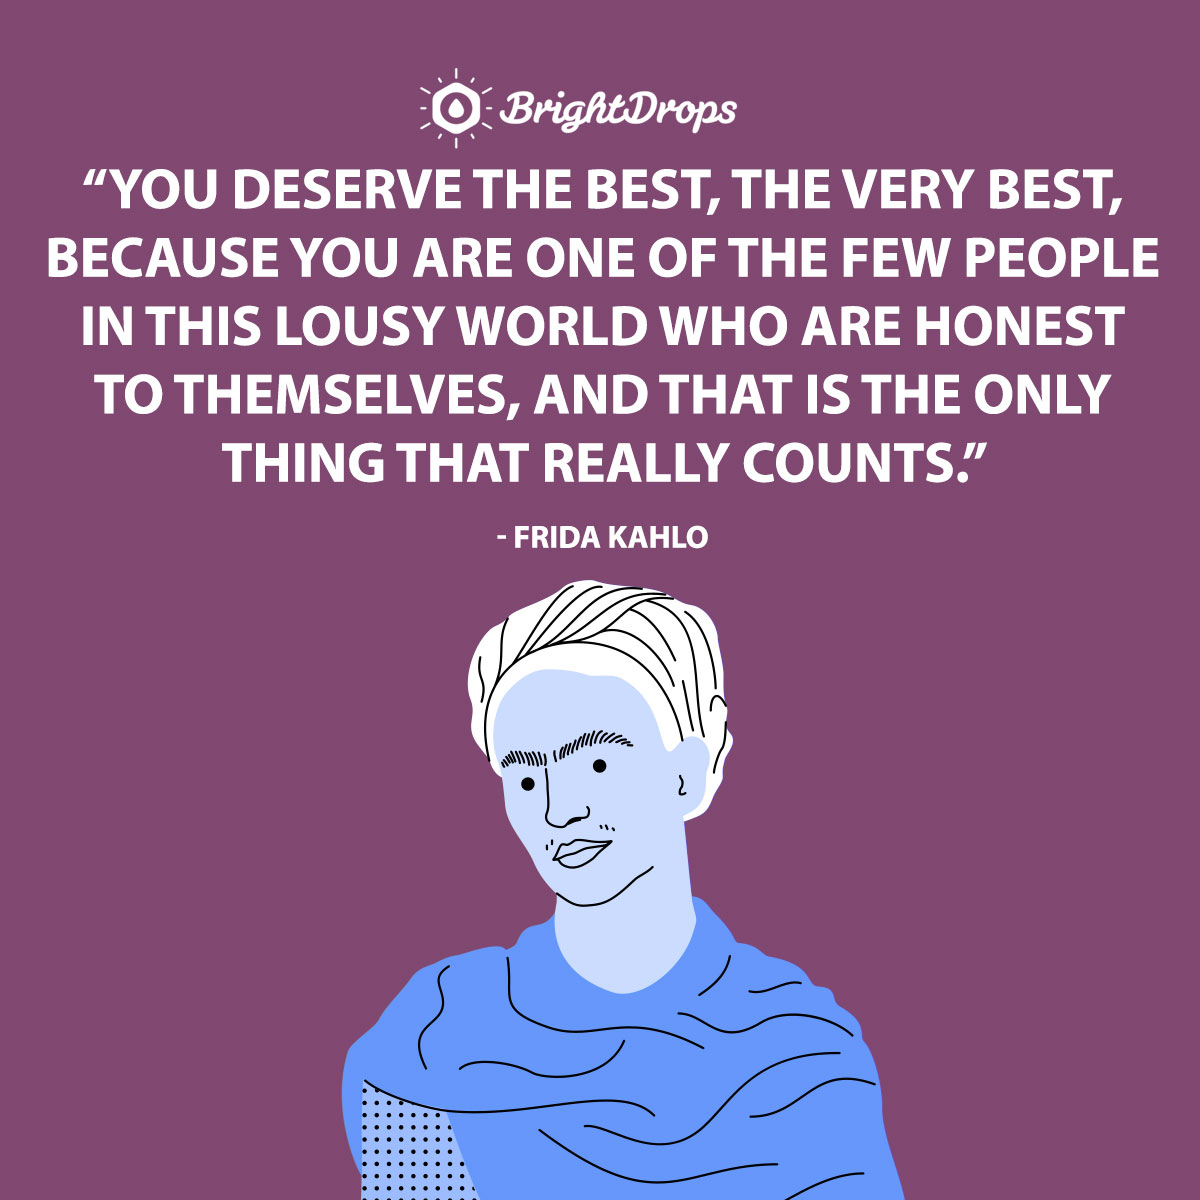 You deserve the best, the very best, because you are one of the few people in this lousy world who are honest to themselves, and that is the only thing that really counts. - Frida Kahlo